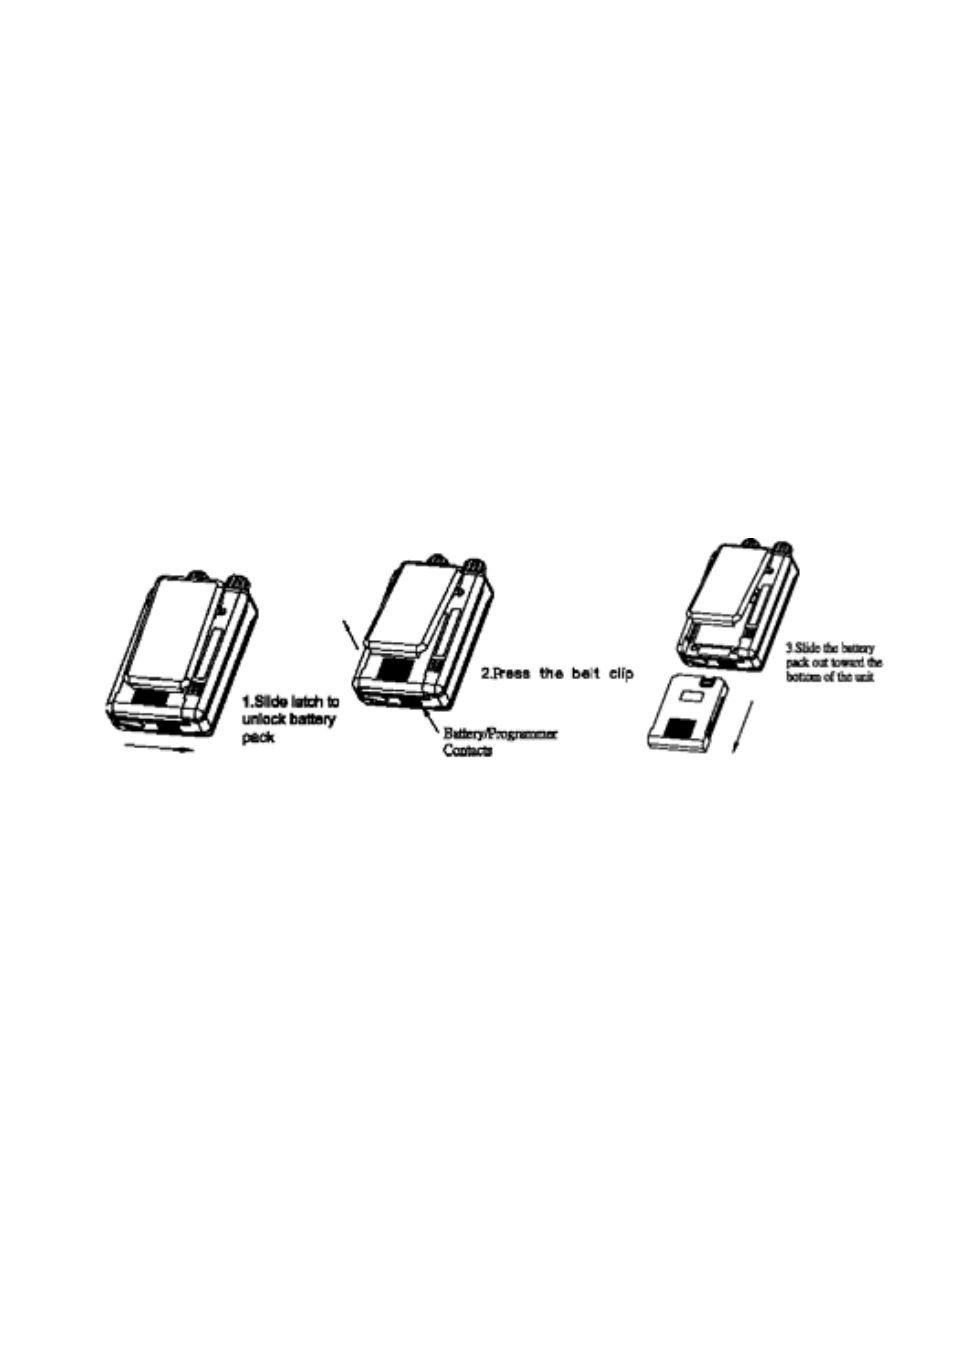 battery installation motorola minitor v user manual page 5 17 rh manualsdir com motorola minitor iv manual motorola minitor v service manual